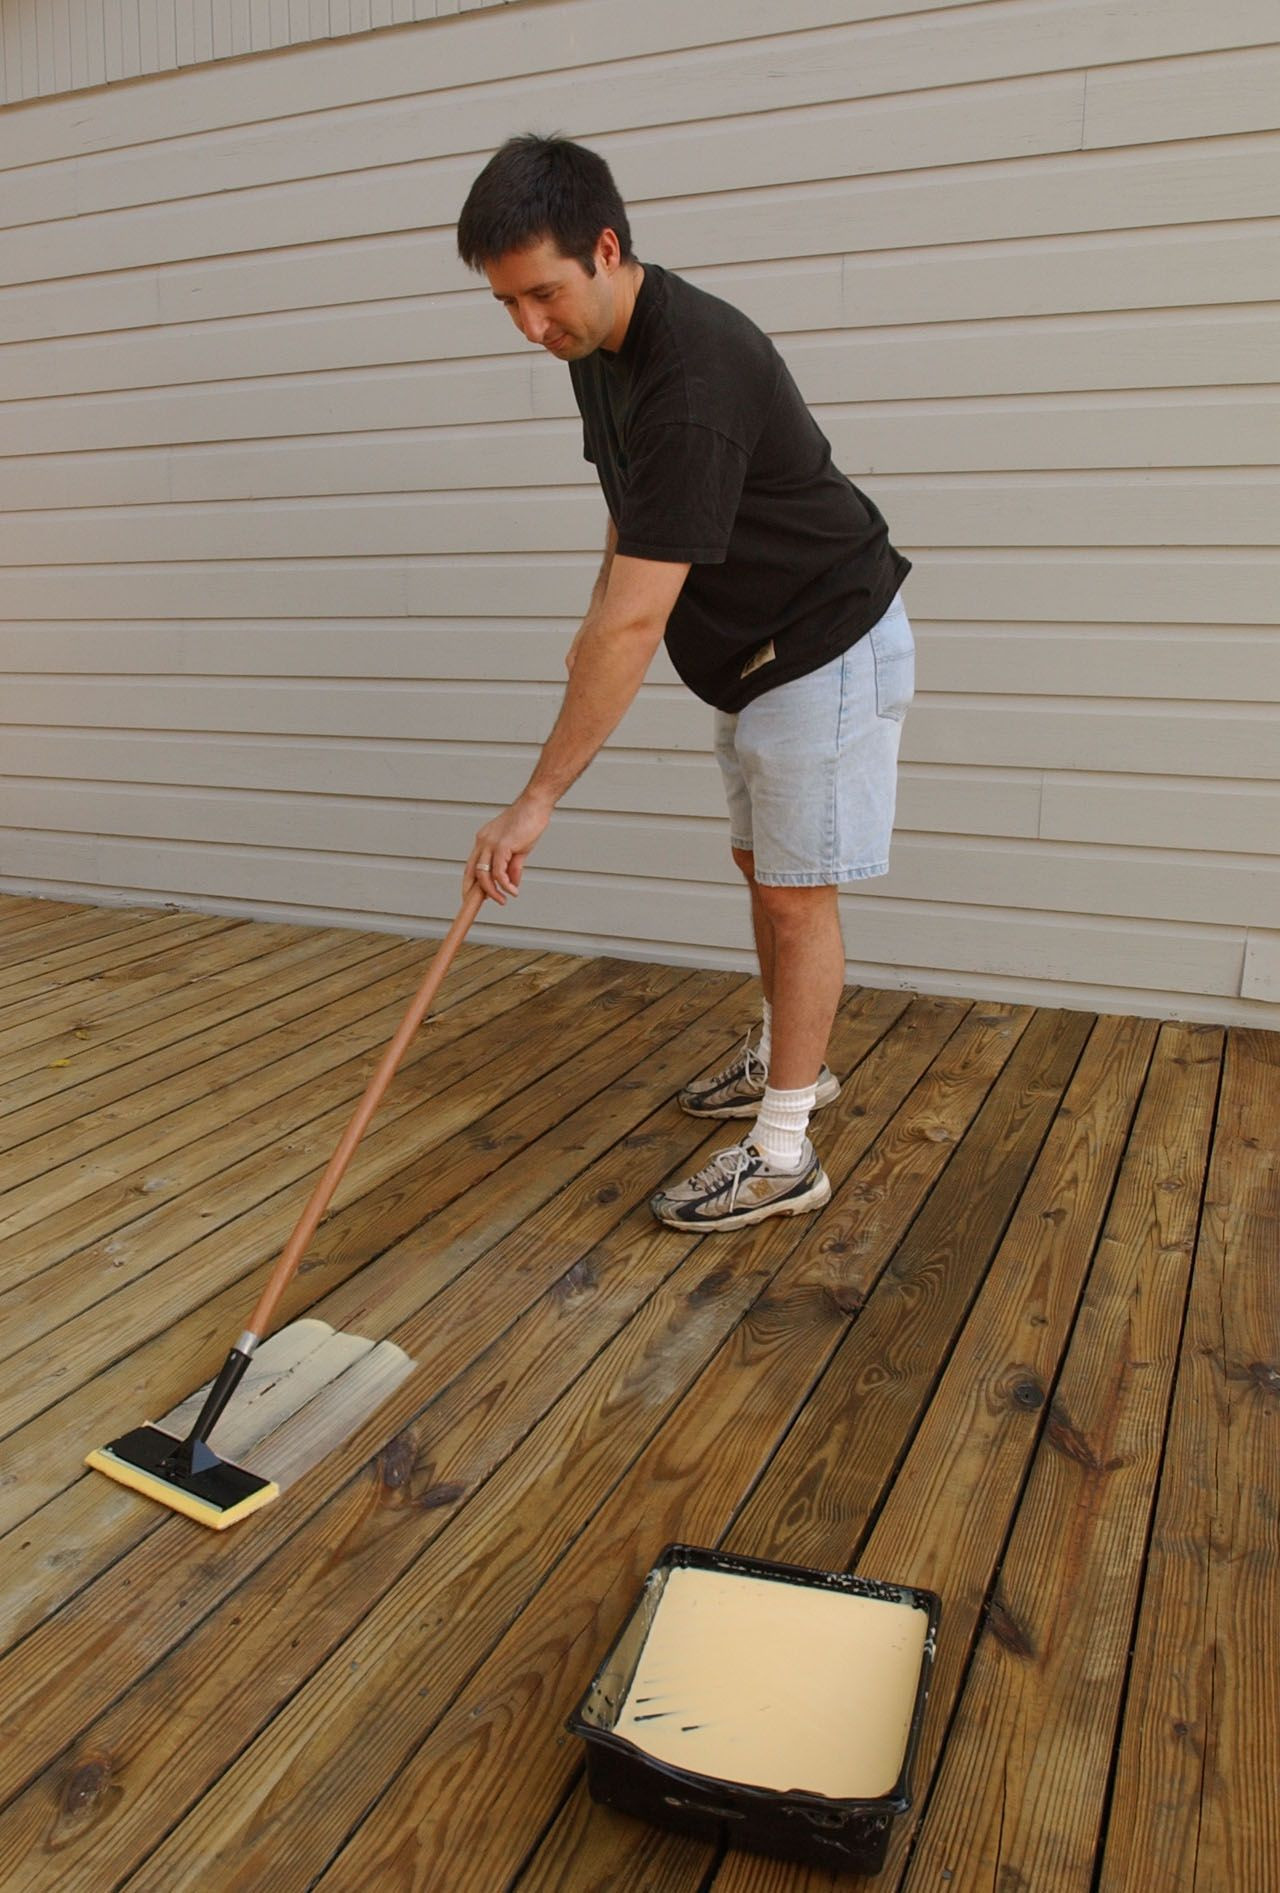 phillips hardwood floors omaha of a paint pad is a great tool for applying thompsons water seal inside a paint pad is a great tool for applying thompsons water seal waterproofers whether its a clear or tinted wood protector or a semi transparent or solid